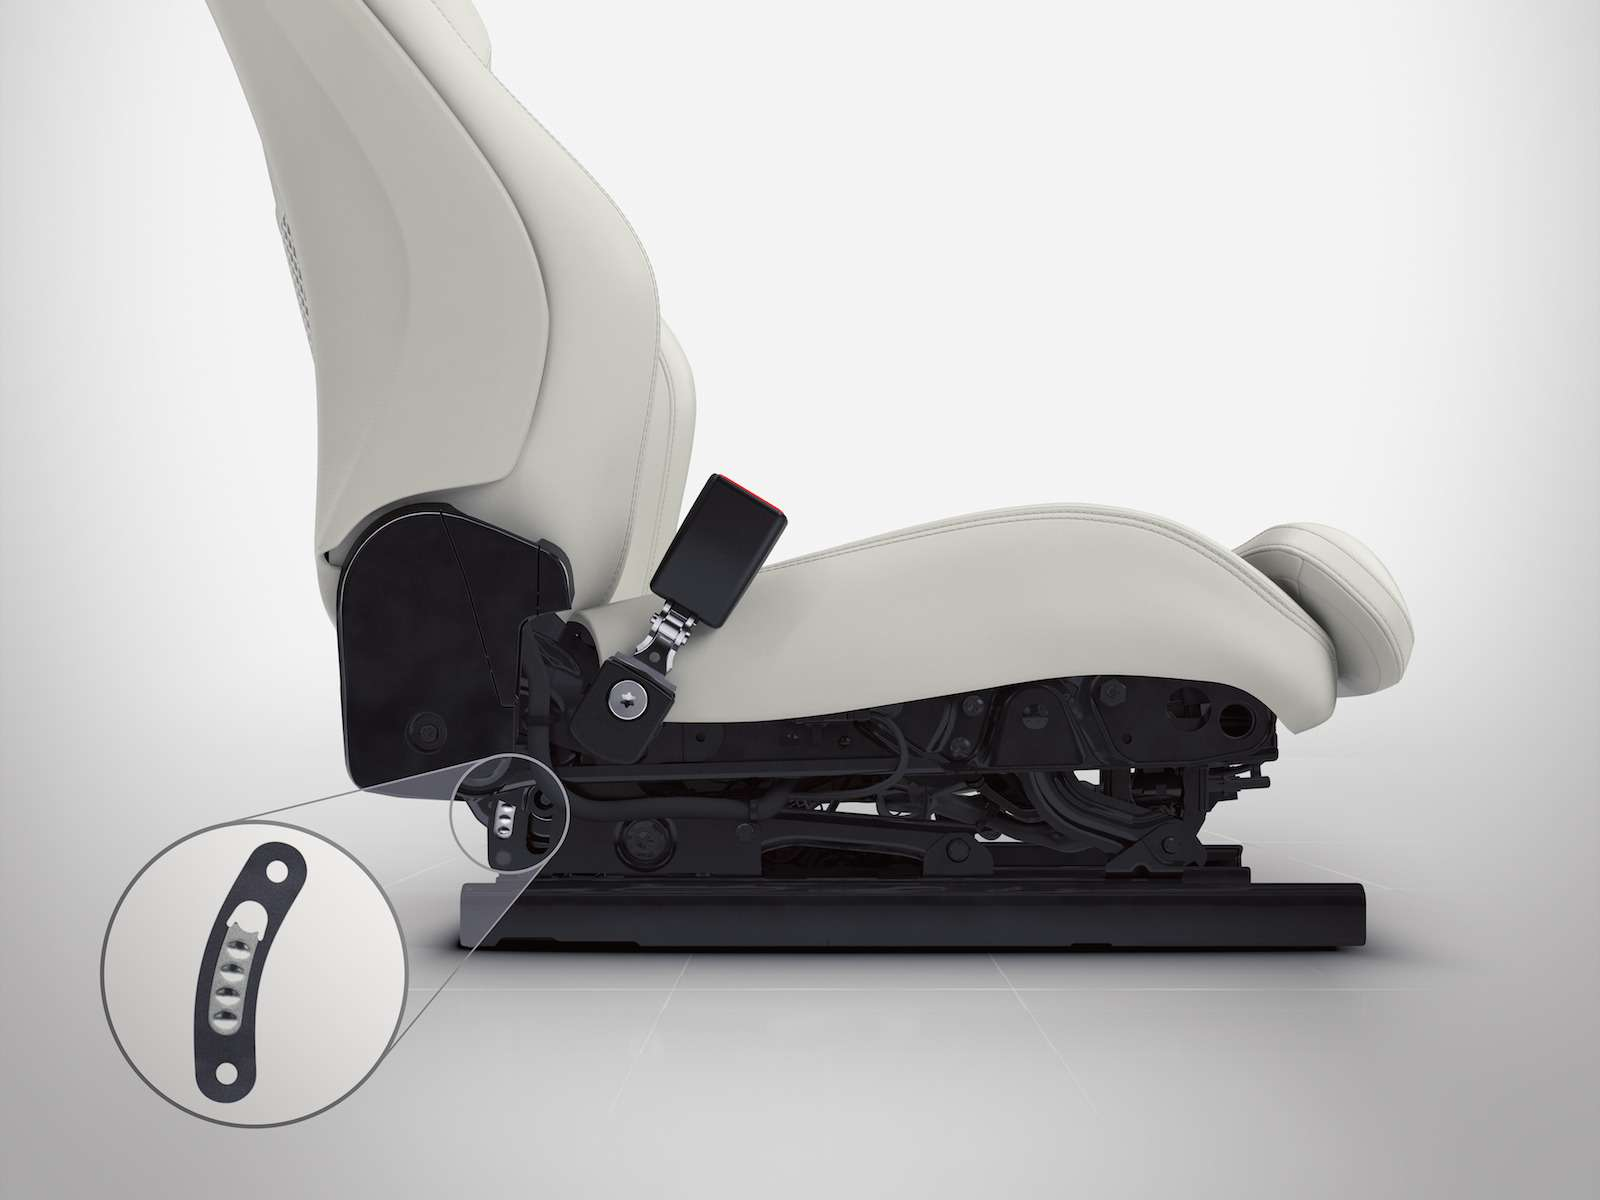 129Energy absorbing functionality inseat